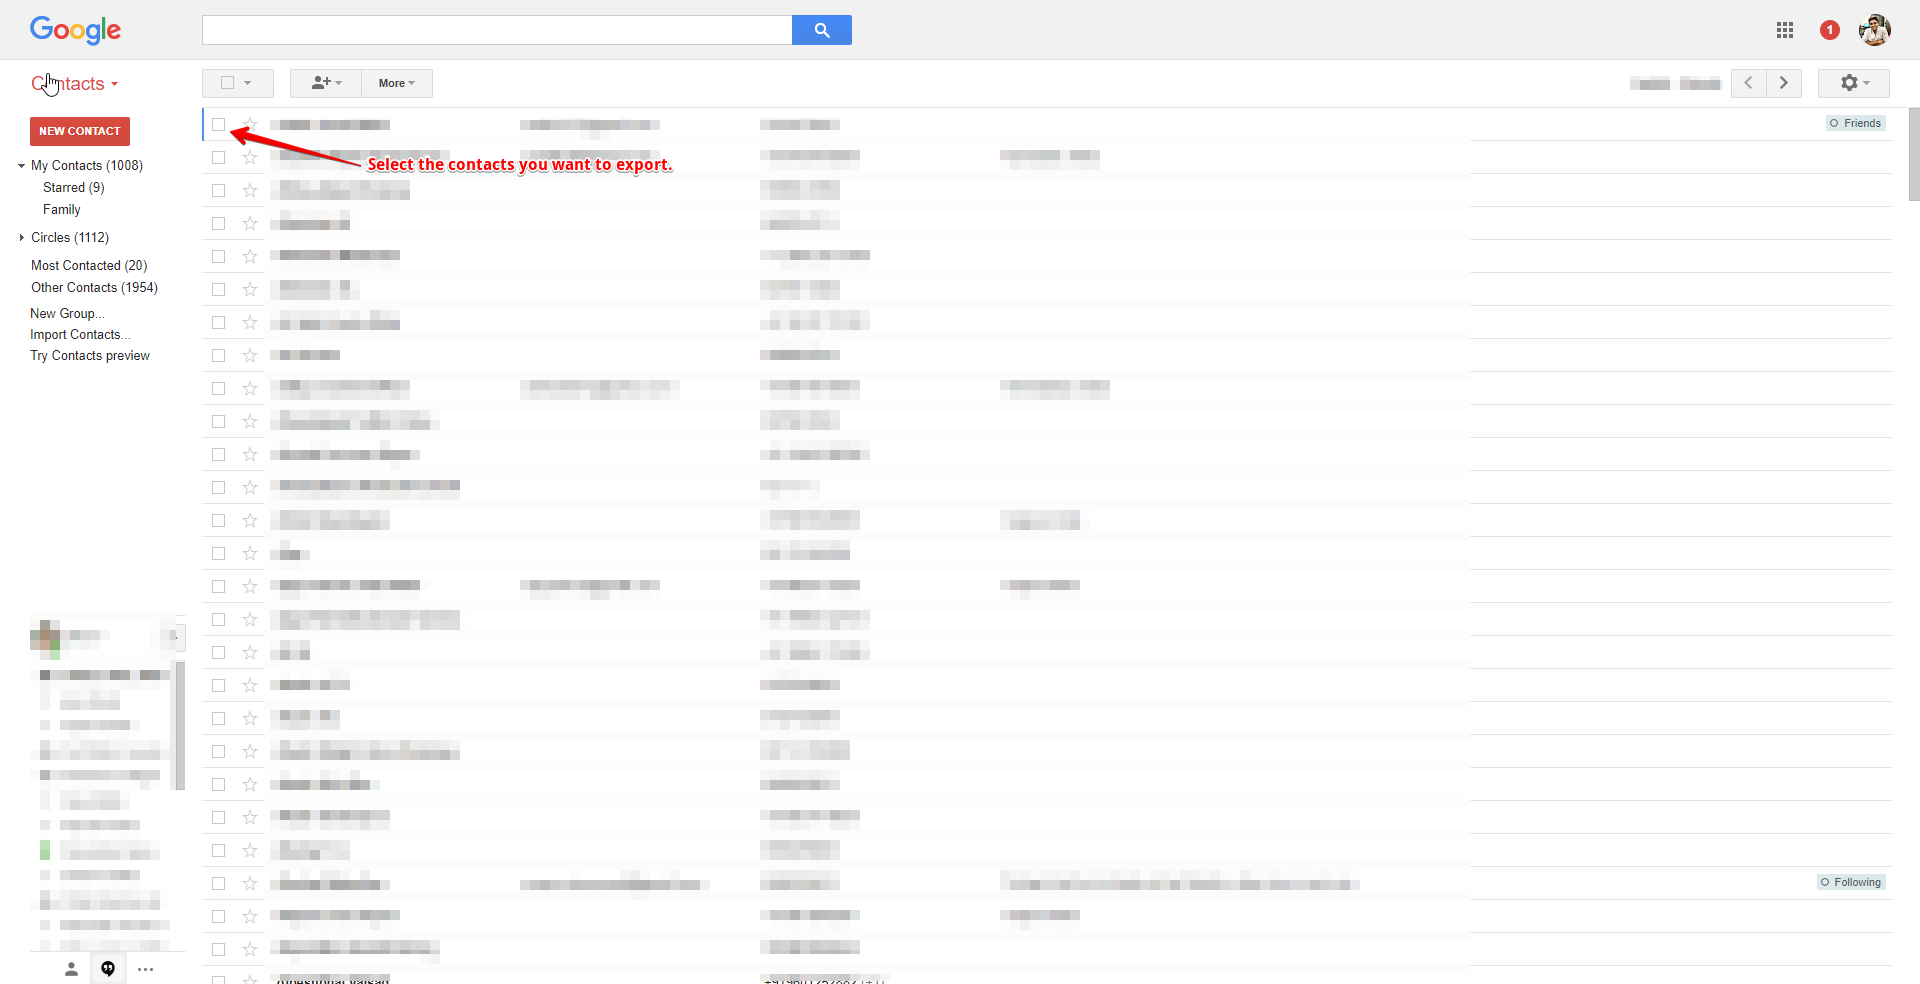 How to Export Contacts from Gmail (Explanation with Images)